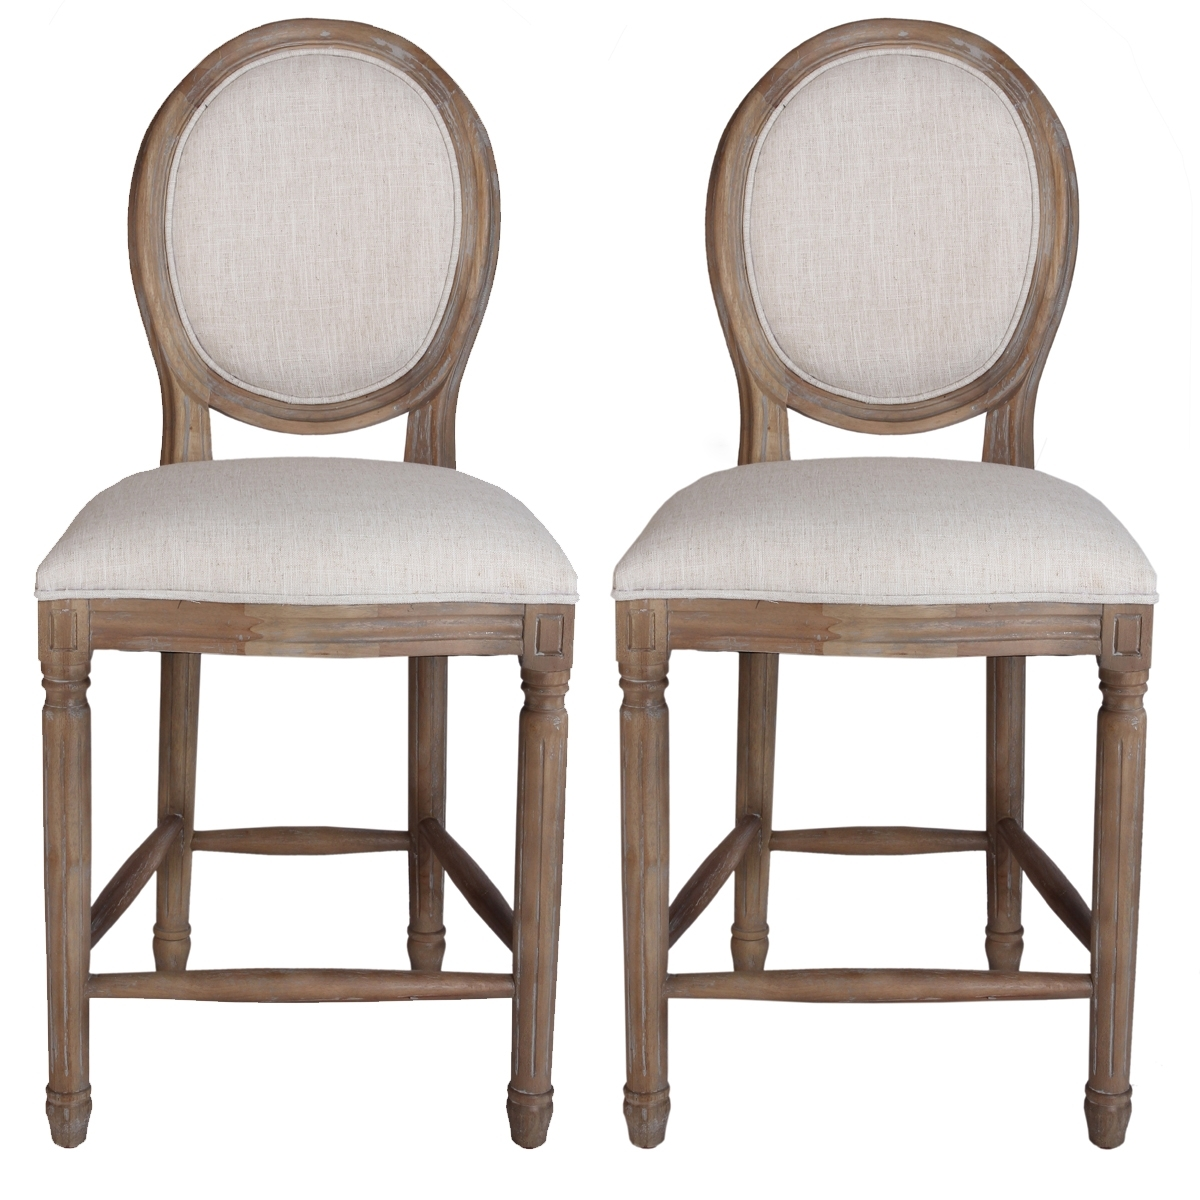 Furniture: French Country Bar Stools For Your Home Bar Or Kitchen inside French Country Counter Stools